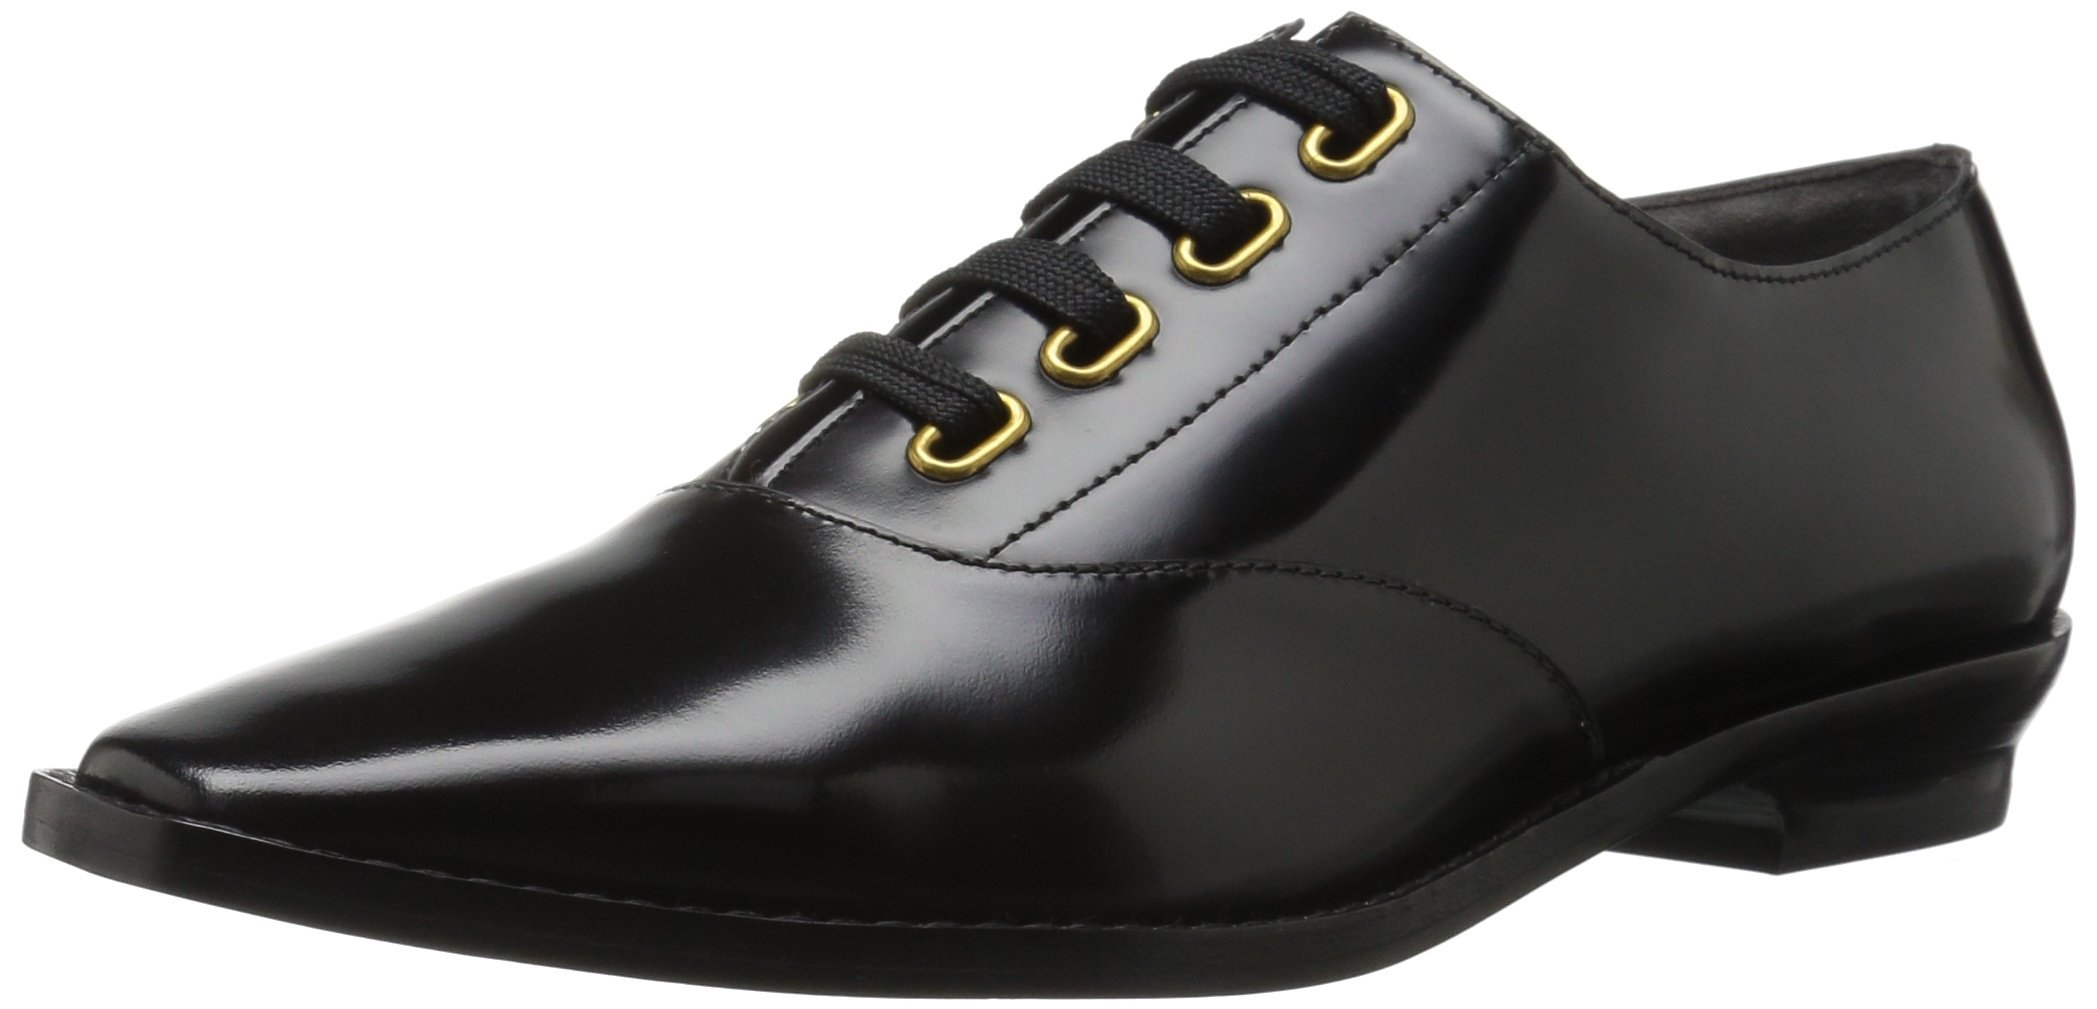 Marc Jacobs Women's Brittany Lace up Oxford, Black, 37 M EU (7 US) by Marc Jacobs (Image #1)